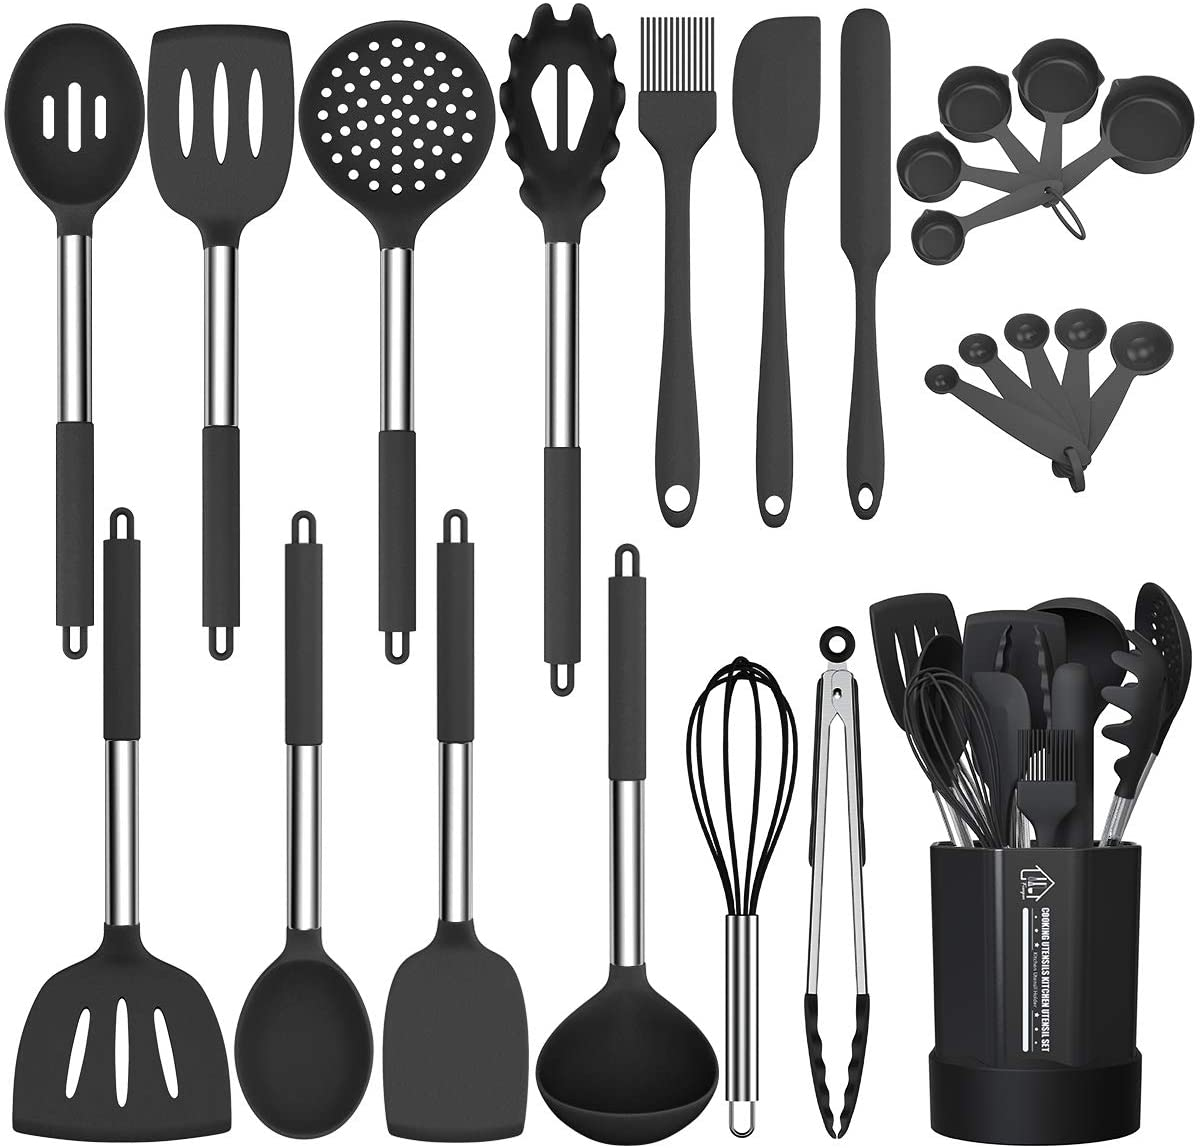 Silicone Cooking Utensil Set, Fungun Non-stick Kitchen Utensil 24 Pcs Cooking Utensils Set, Heat Resistant Cookware, Silicone Kitchen Tools Gift with Stainless Steel Handle (Black-24pcs): Kitchen & Dining